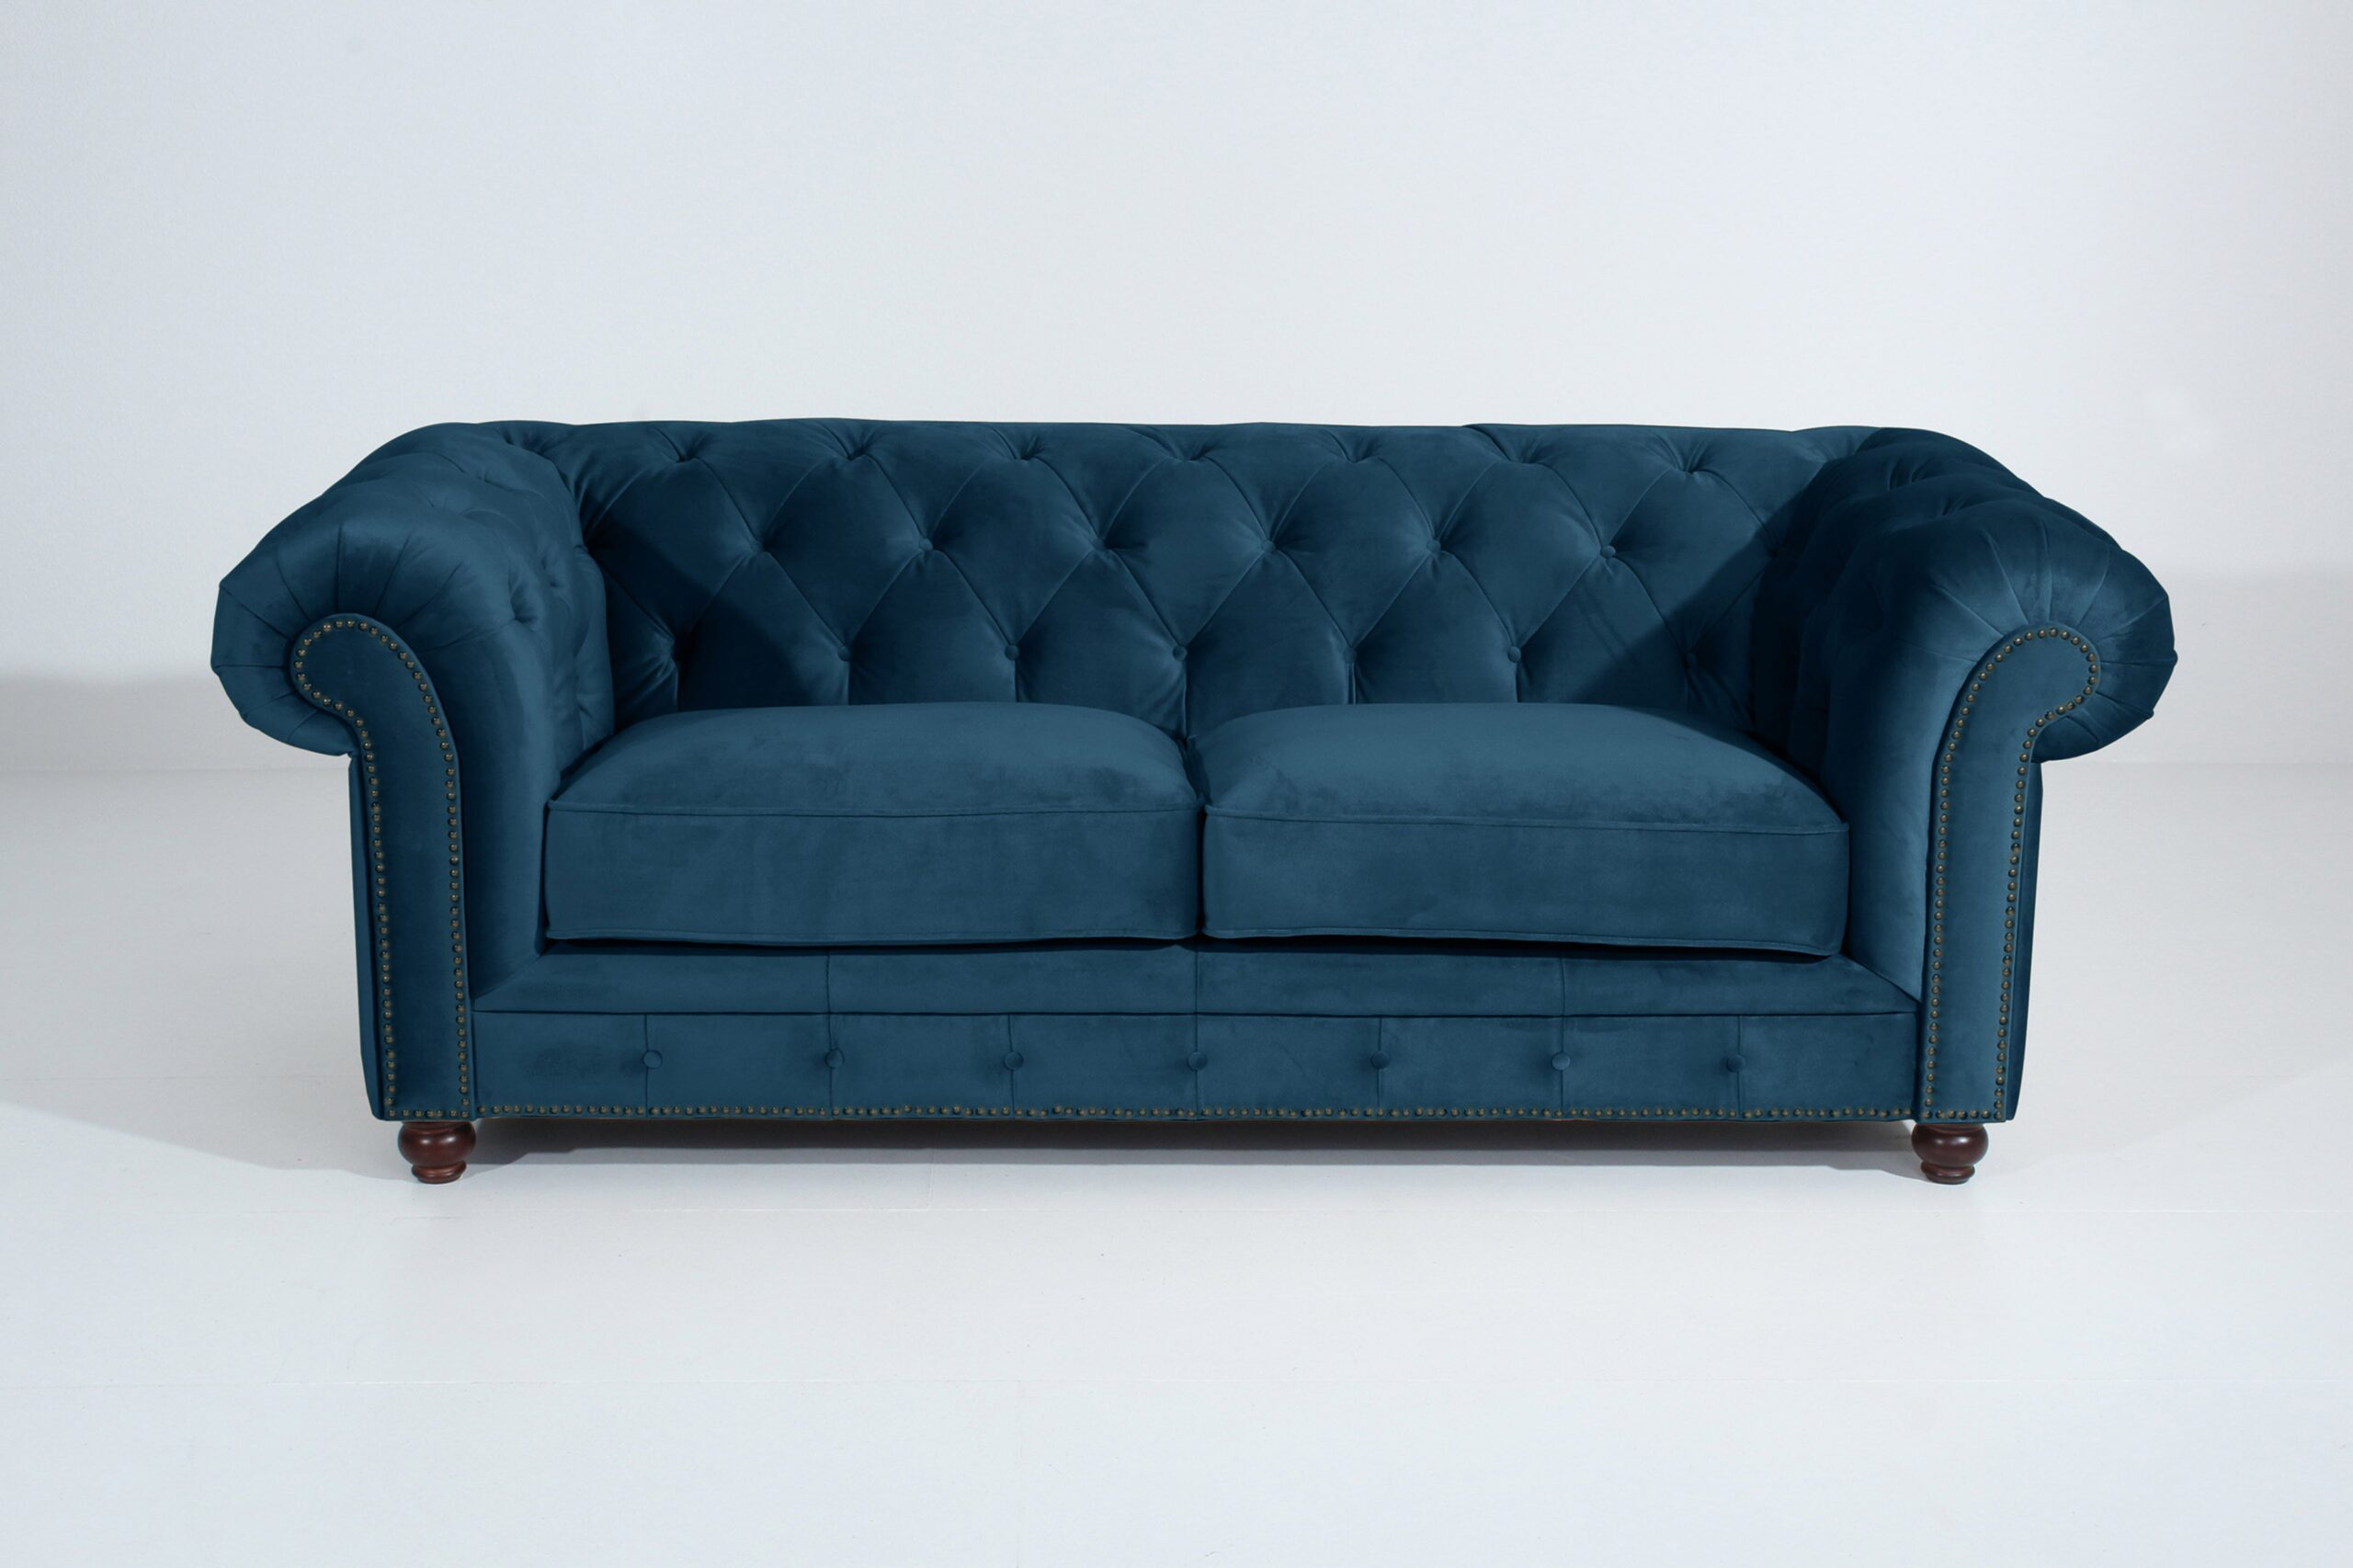 Full Size of Orleans Von Mawinzer Chesterfield Sofa Petrol Sofas Couches Großes Mit Relaxfunktion Schilling Led Bettfunktion Federkern Muuto Ikea Schlaffunktion Lounge Sofa Sofa Petrol